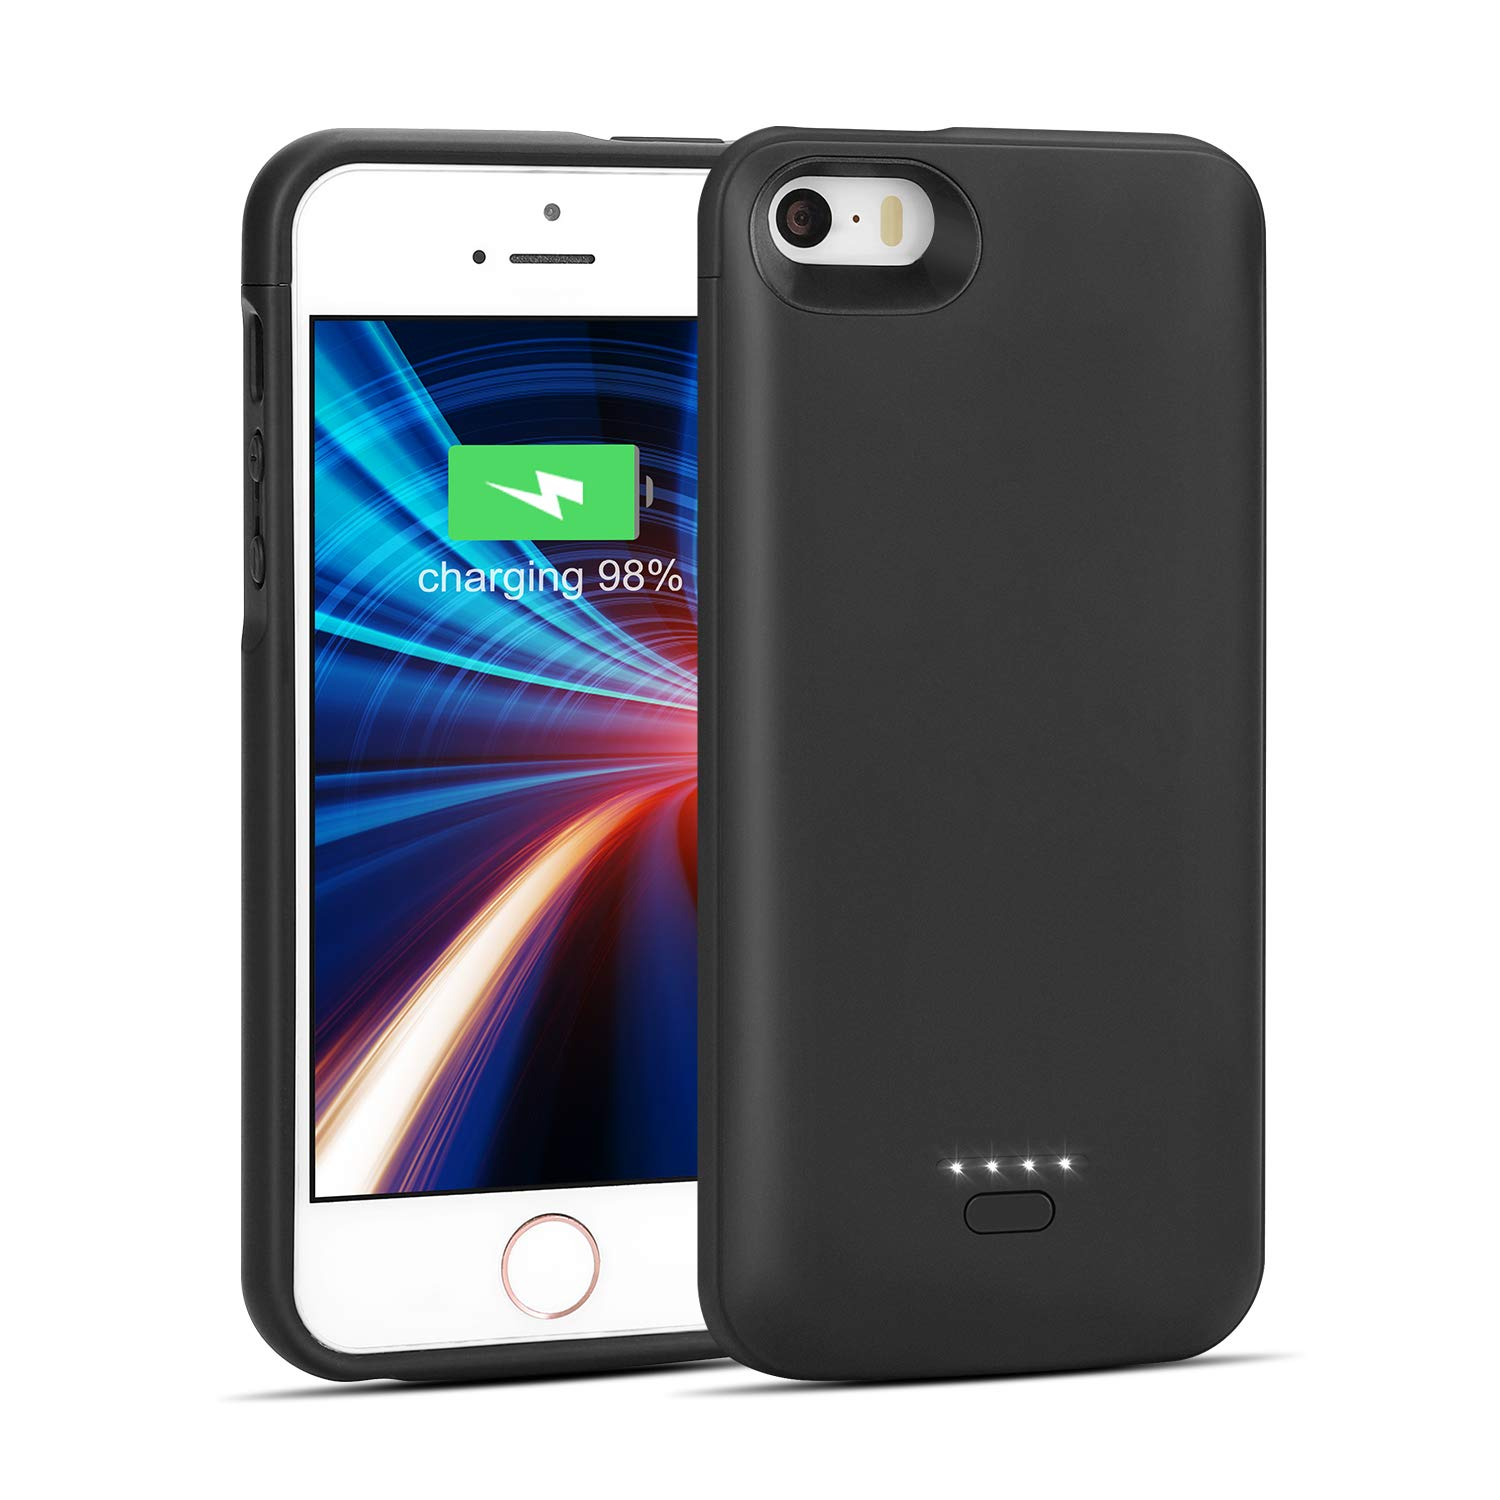 iPhone 5/5S/SE Battery Case, Wavypo 4000mAh Charging Case Ultra Slim Extended Rechargeable Charger Case External Battery Pack Portable Power Protective Case for iPhone 5, 5S, SE-Black (NOT FIT 5C) by Wavypo